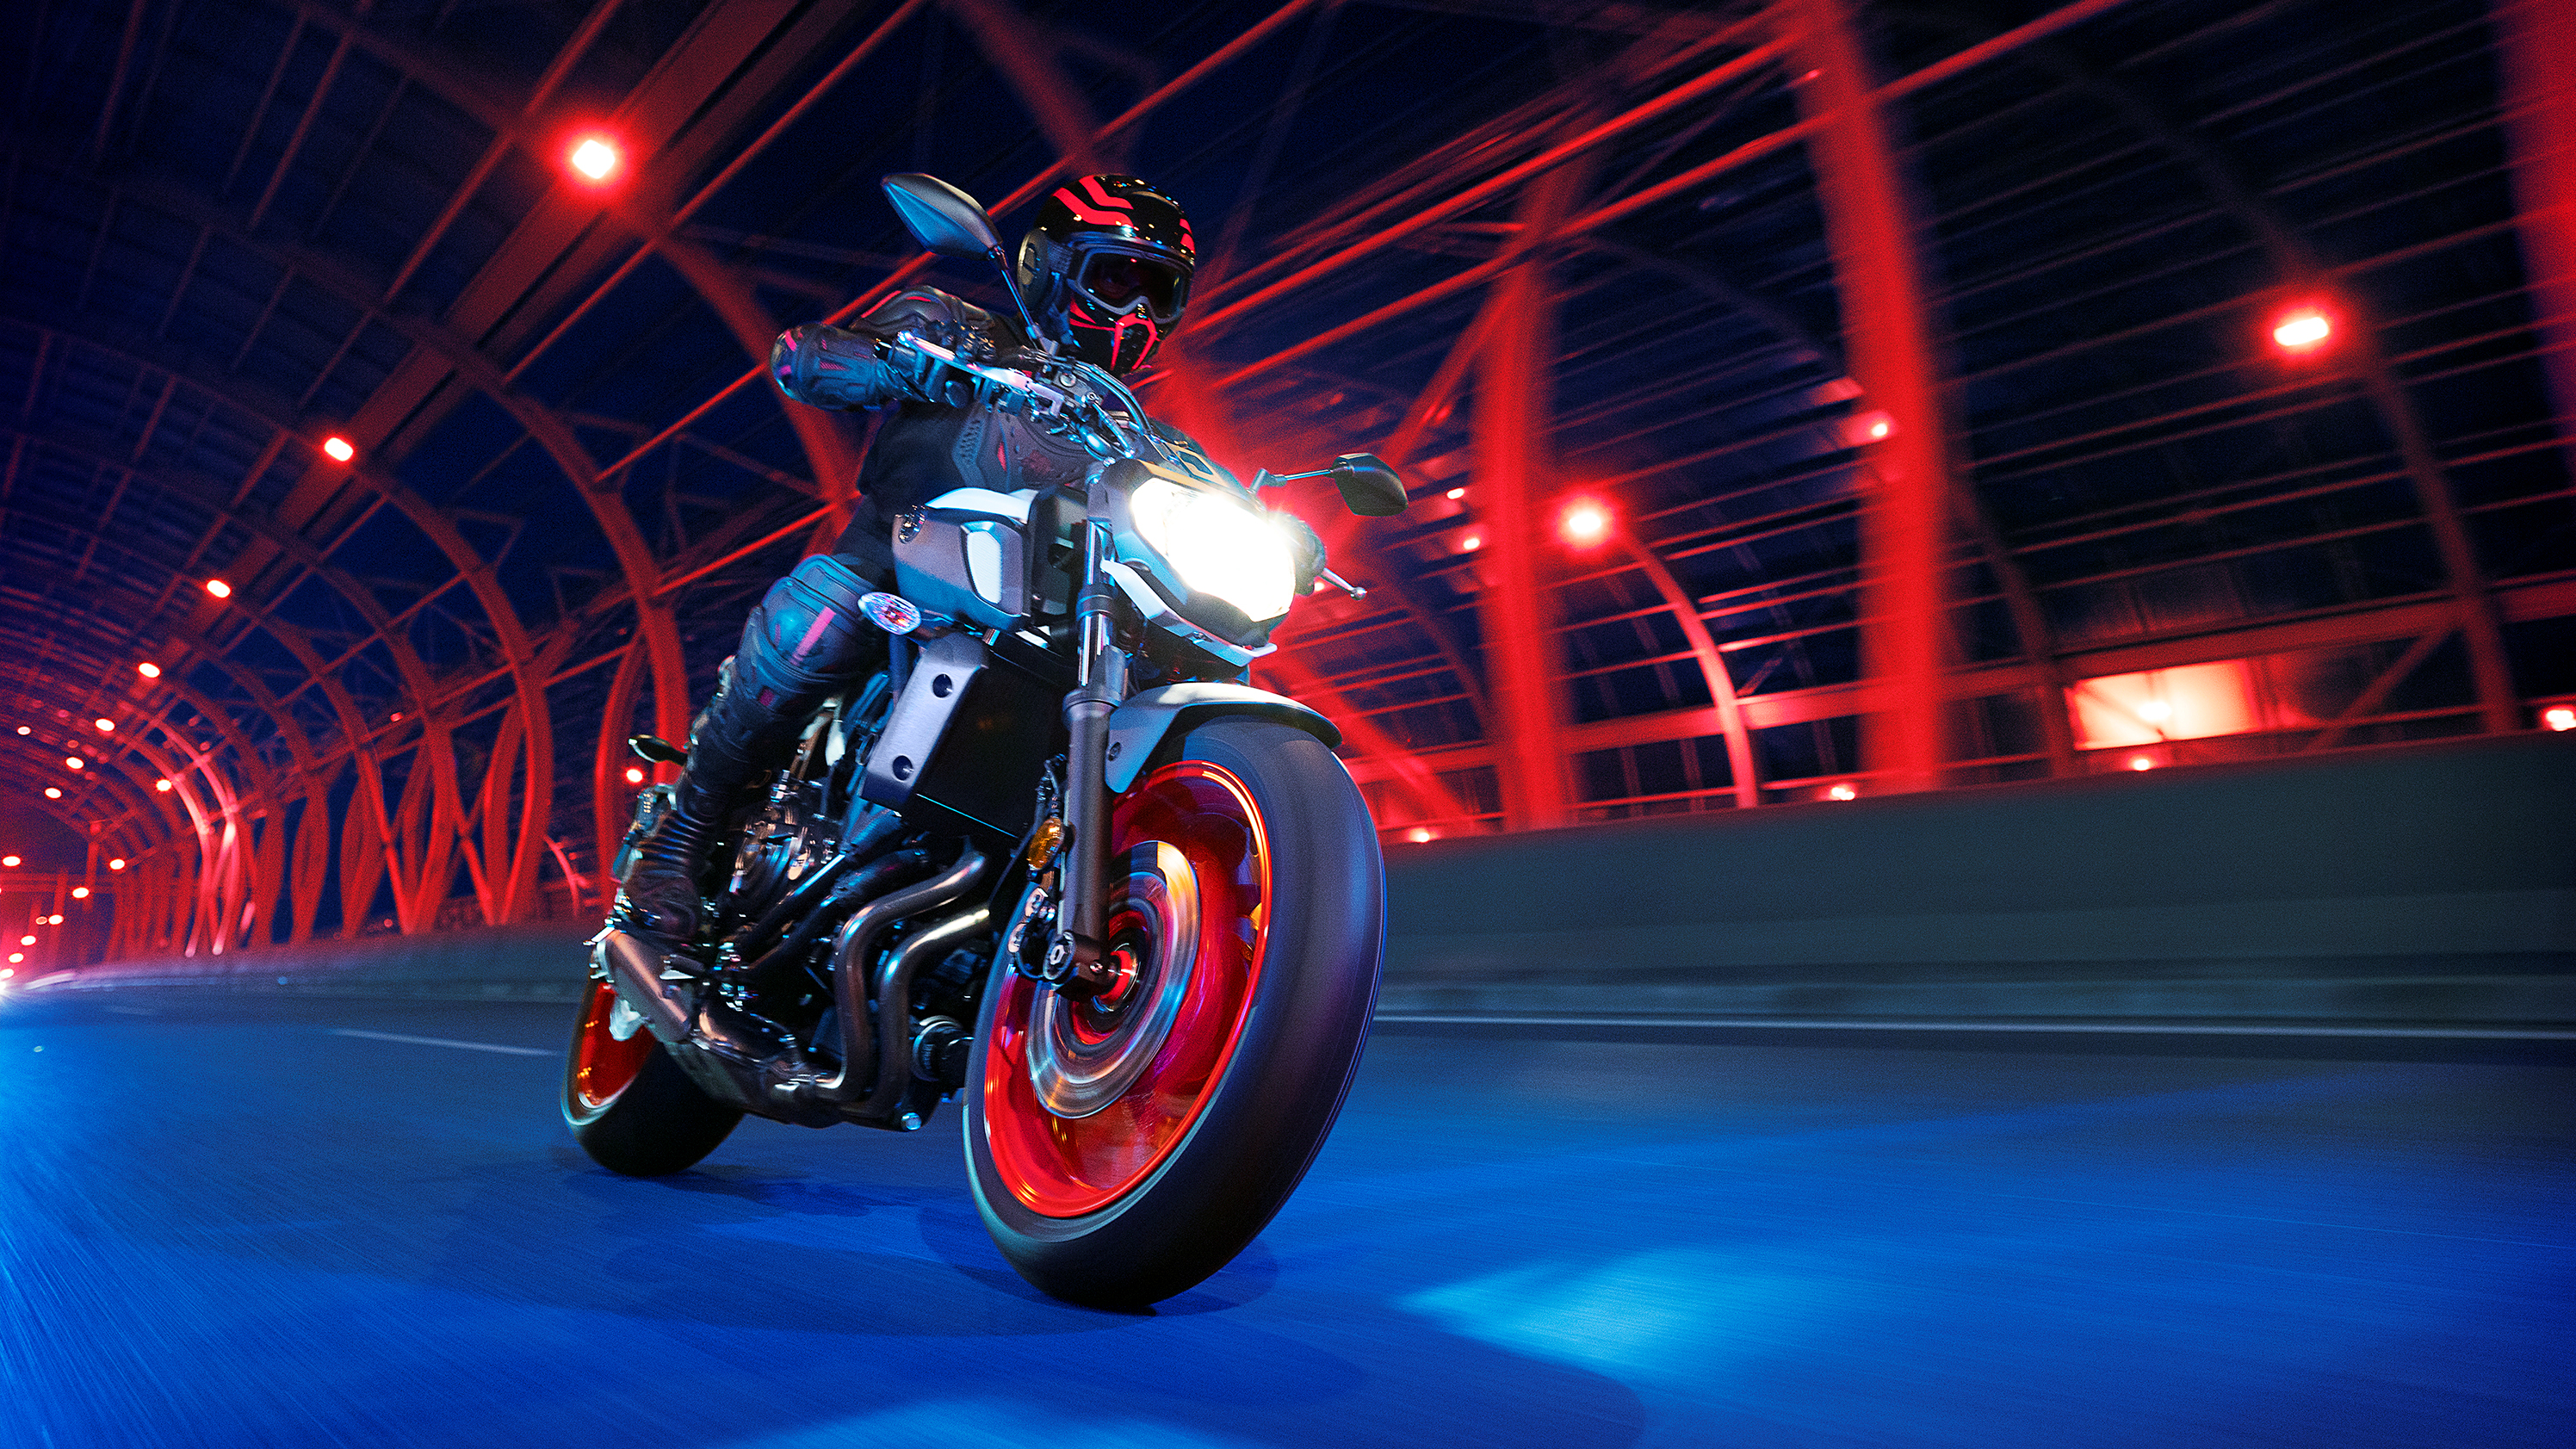 Best Gas For BMW >> 2018 - 2019 Yamaha MT-07 Pictures, Photos, Wallpapers ...